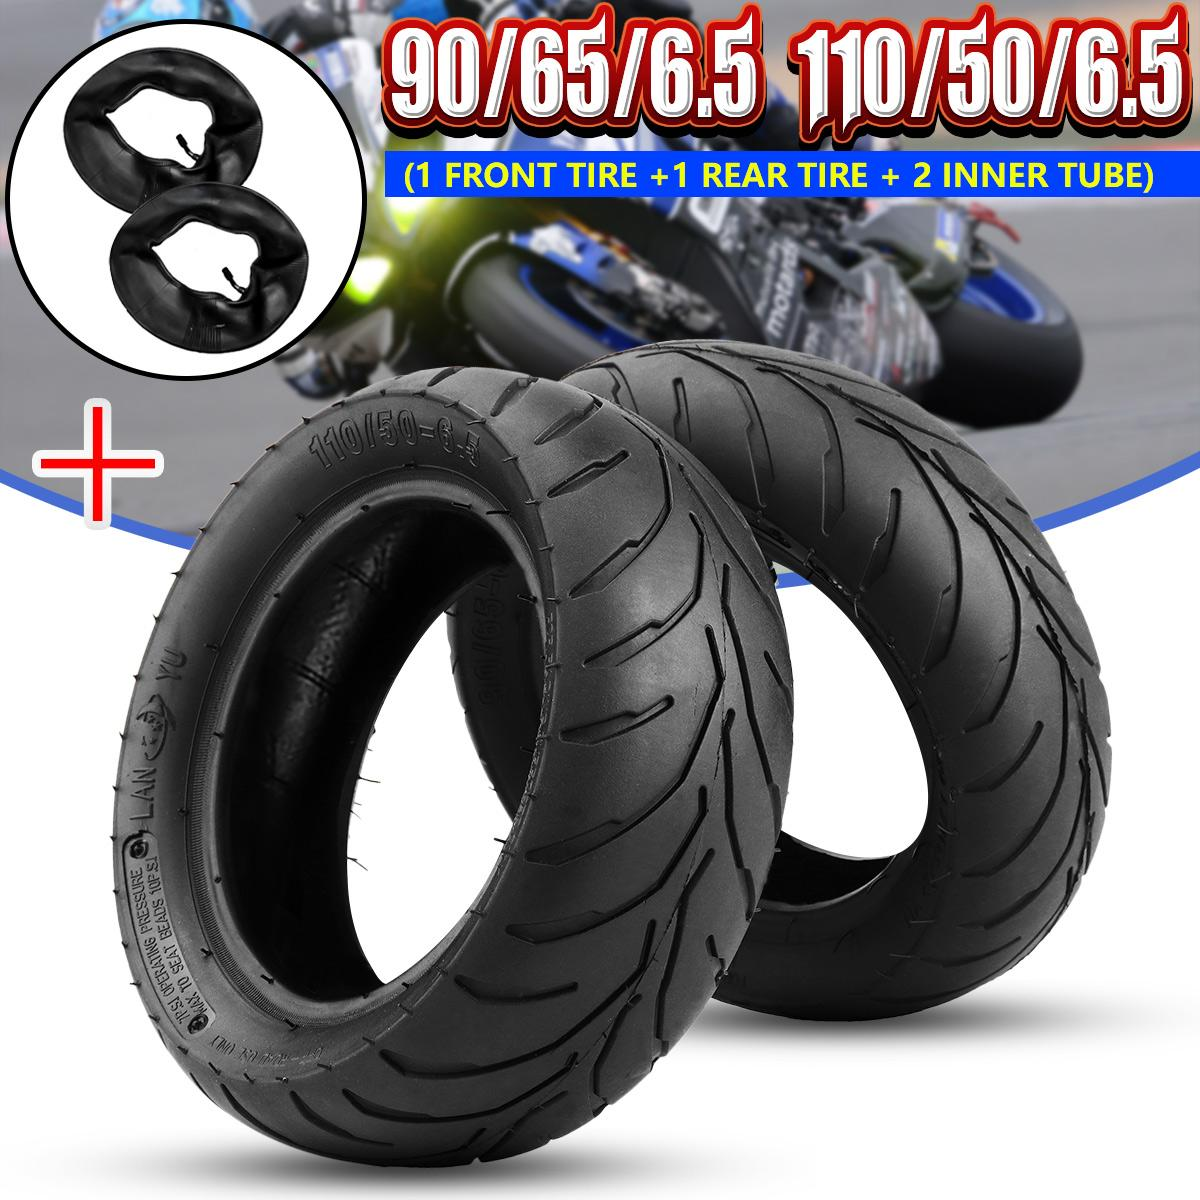 High Quality Front Rear Tire with Inner for 47cc/49cc Mini Pockets Bike Dirt Bike 90/65 6.5 or 110/50 6.5